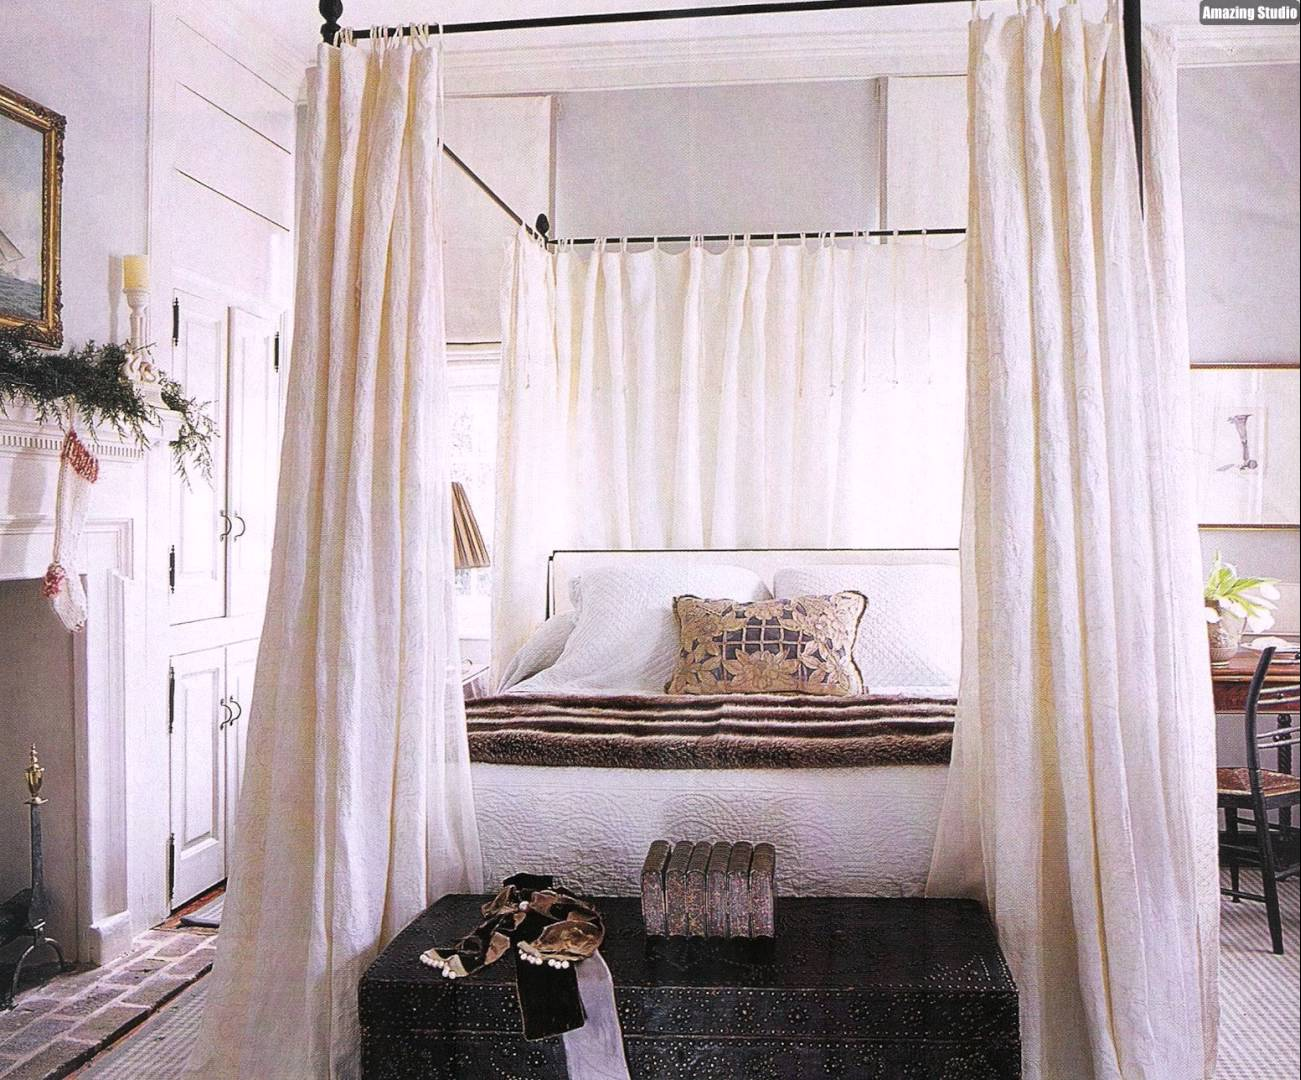 Diy Canopy Bed From Pvc Pipes Midcityeast